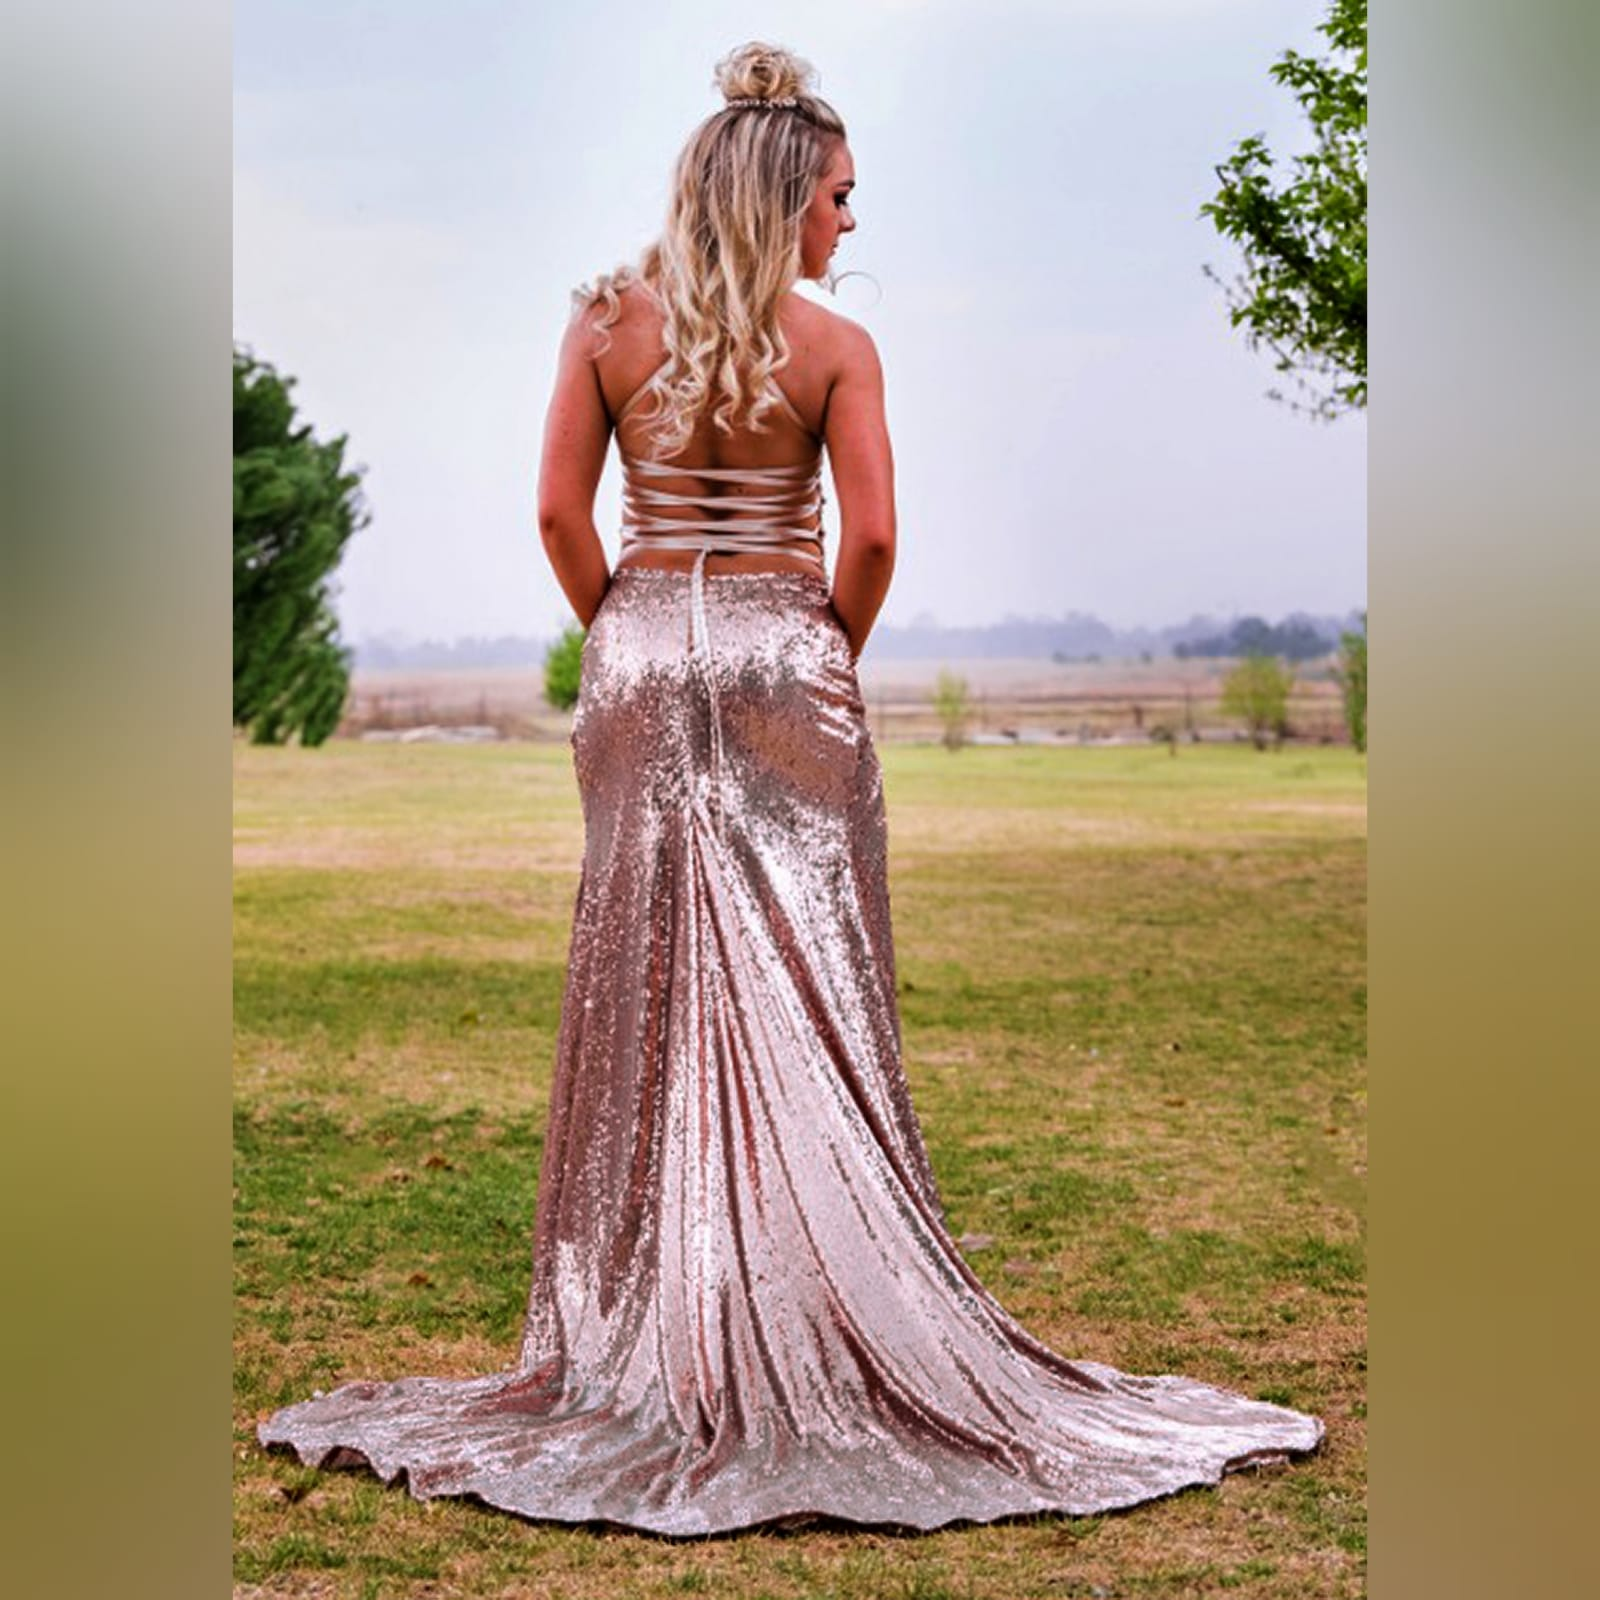 Rose gold sequins beaded matric dance dress with a beaded bodice 4 rose gold sequins beaded matric dance dress with a beaded bodice, an open lace-up back. High slit and a train.